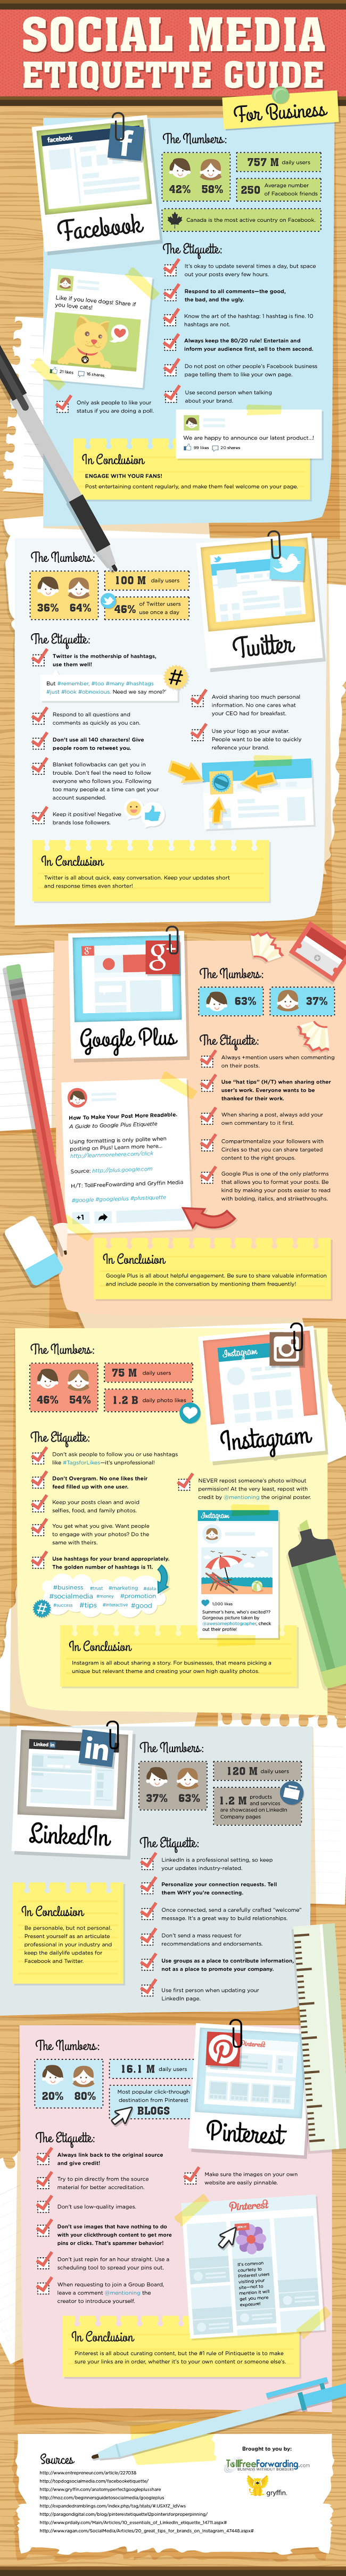 Your-Complete-Social-Media-Etiquette-Guide-for-business